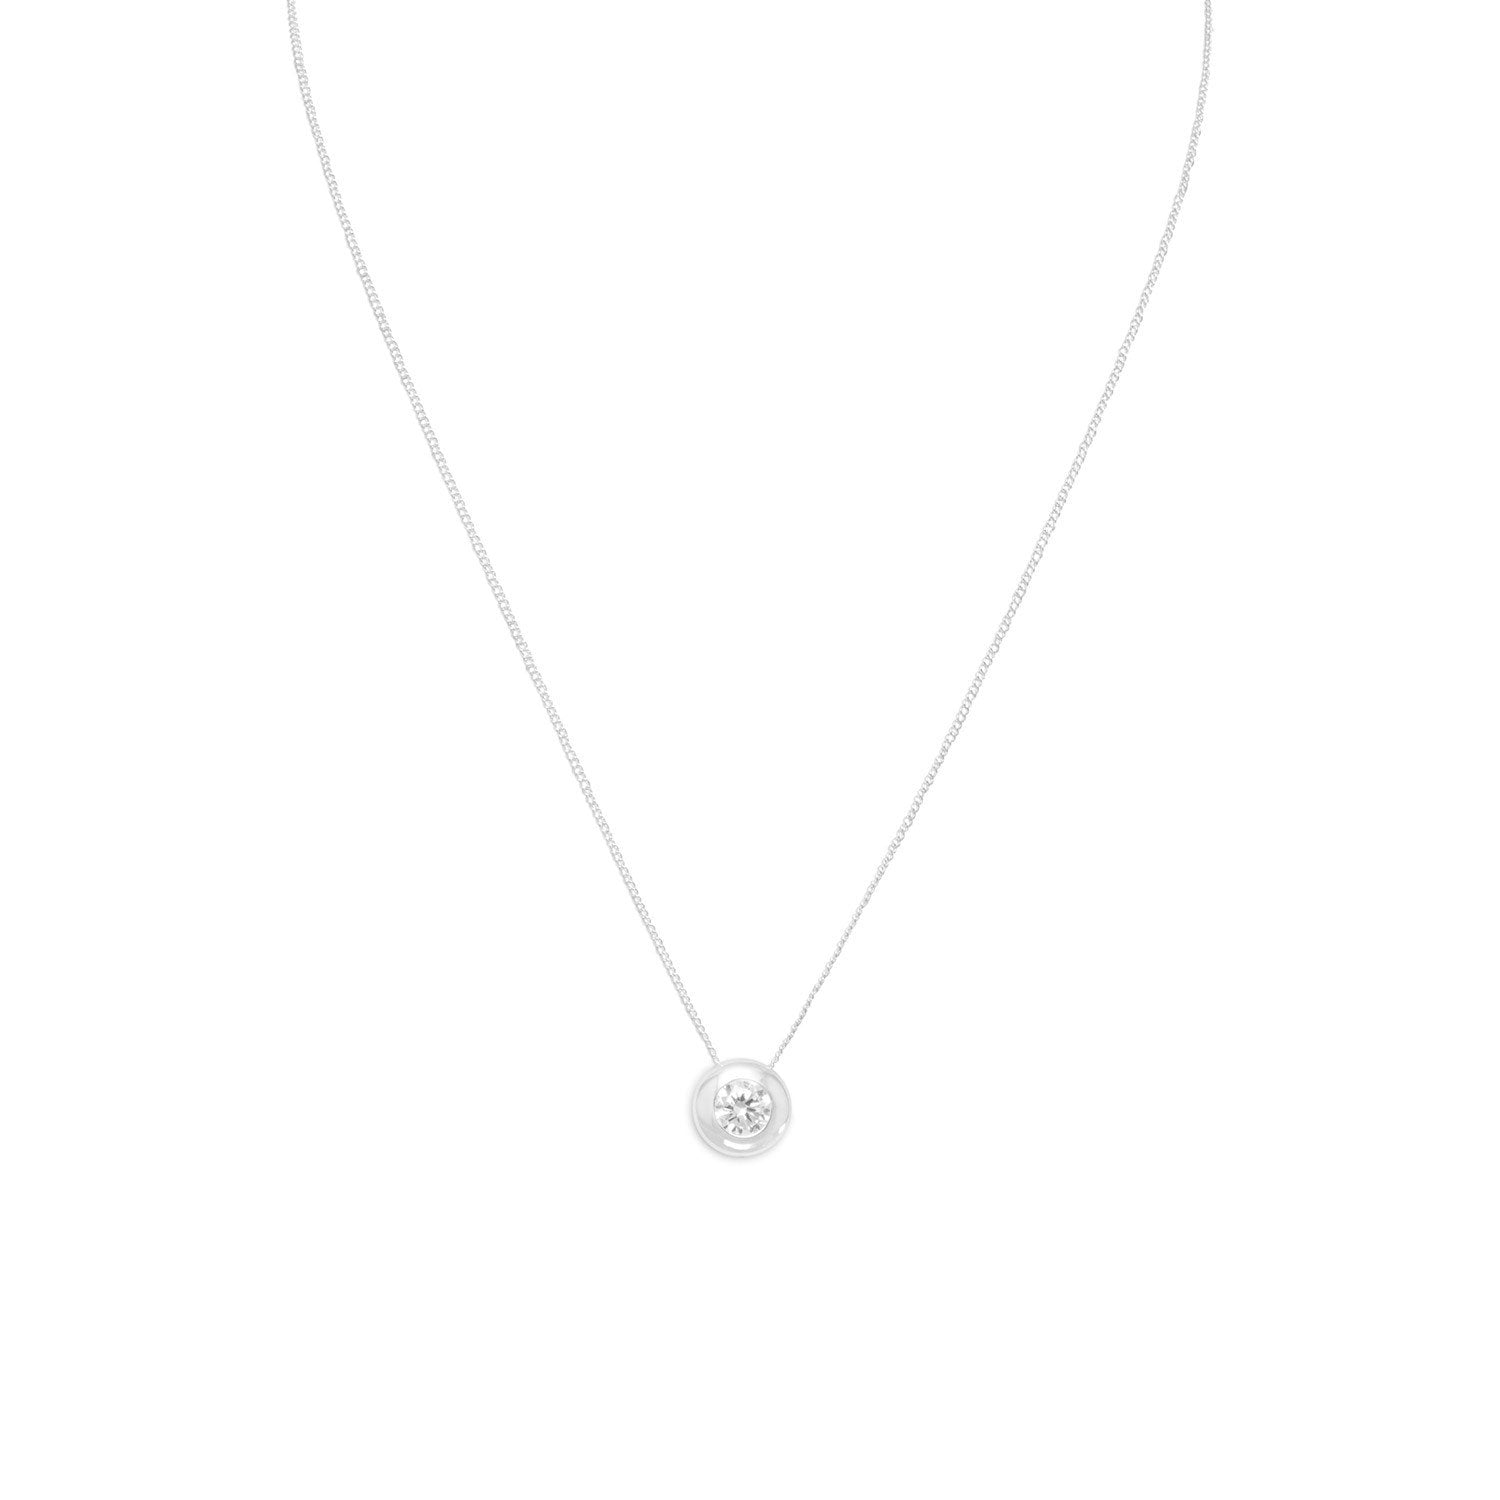 "16"" Necklace with 5mm Bezel Set CZ"